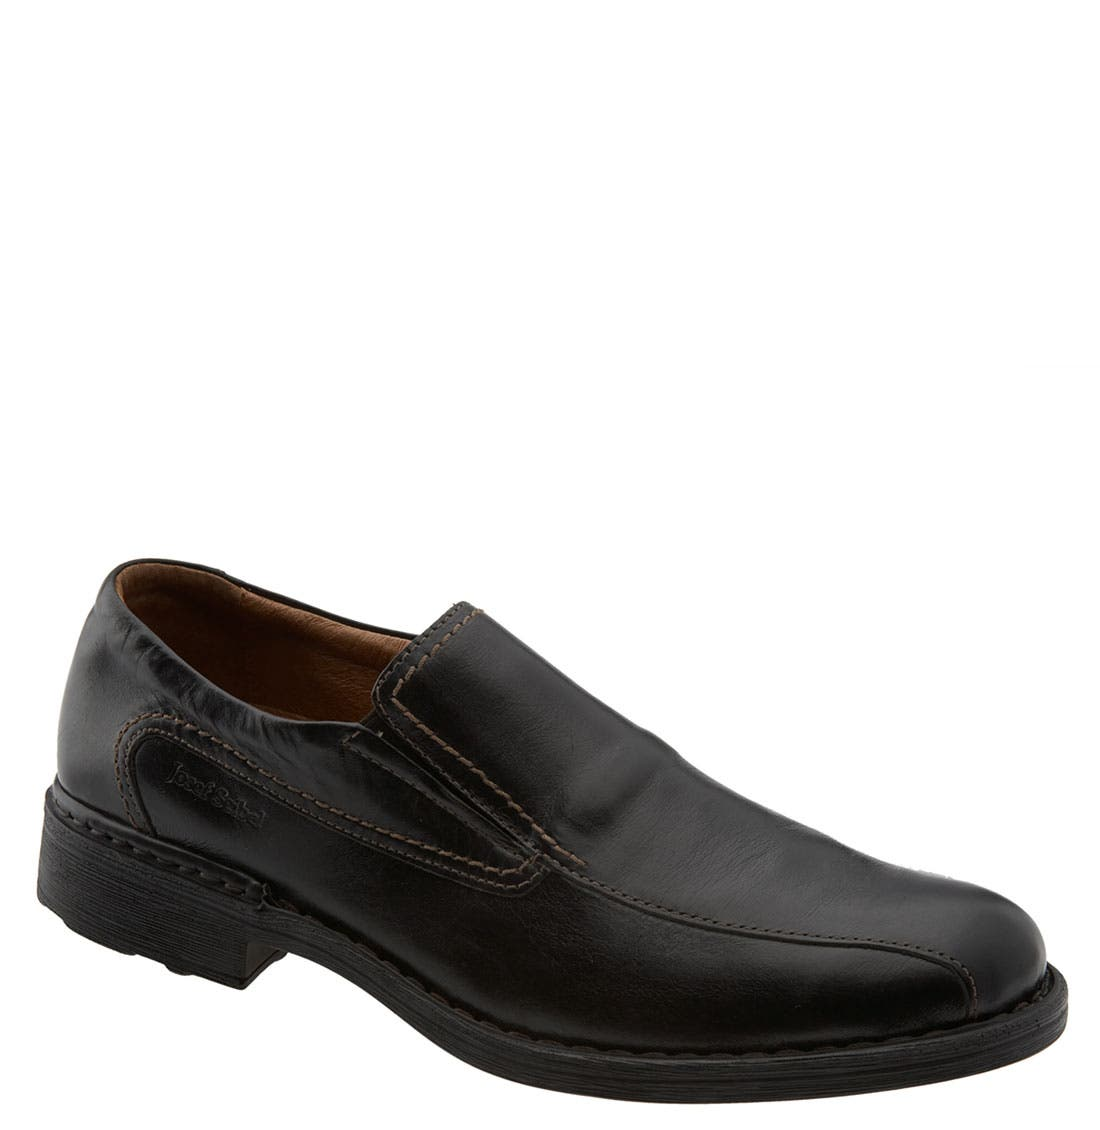 Josef Seibel 'Samuel' Slip-On